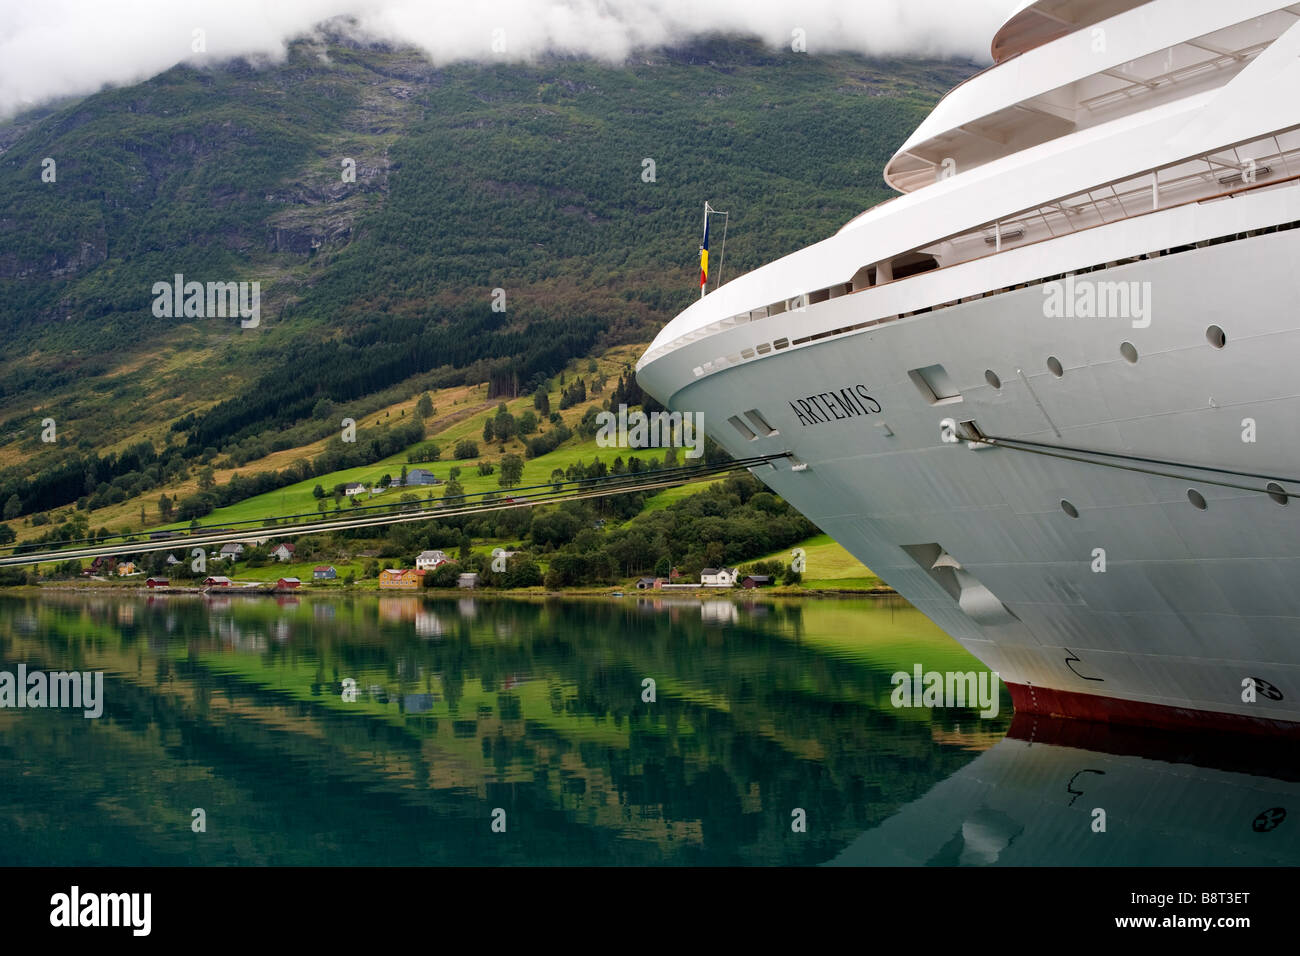 P&O cruise ship Artemis berthed in Olden, Norway - Stock Image